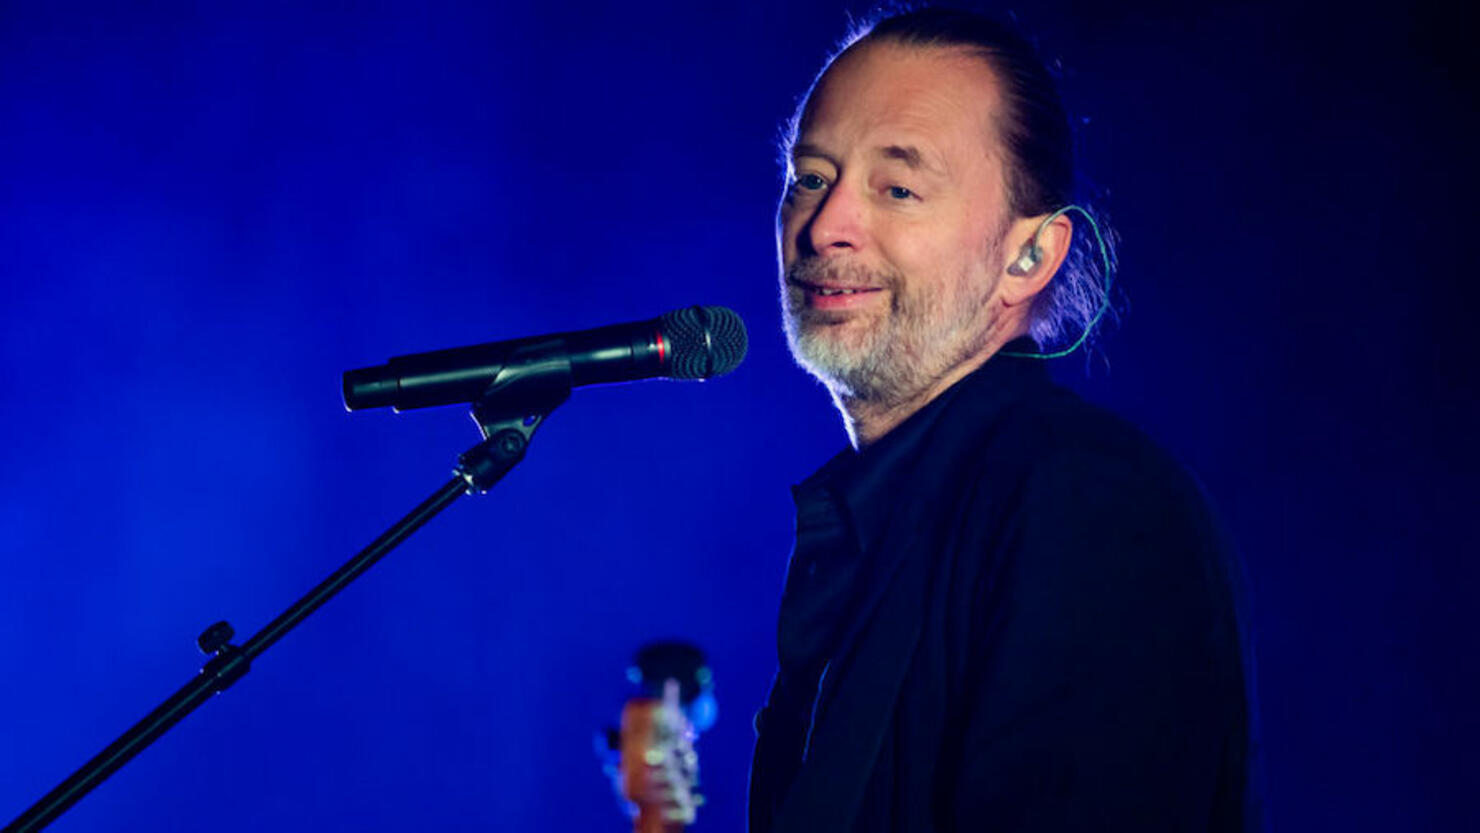 Thom Yorke Performs At The Greek Theatre